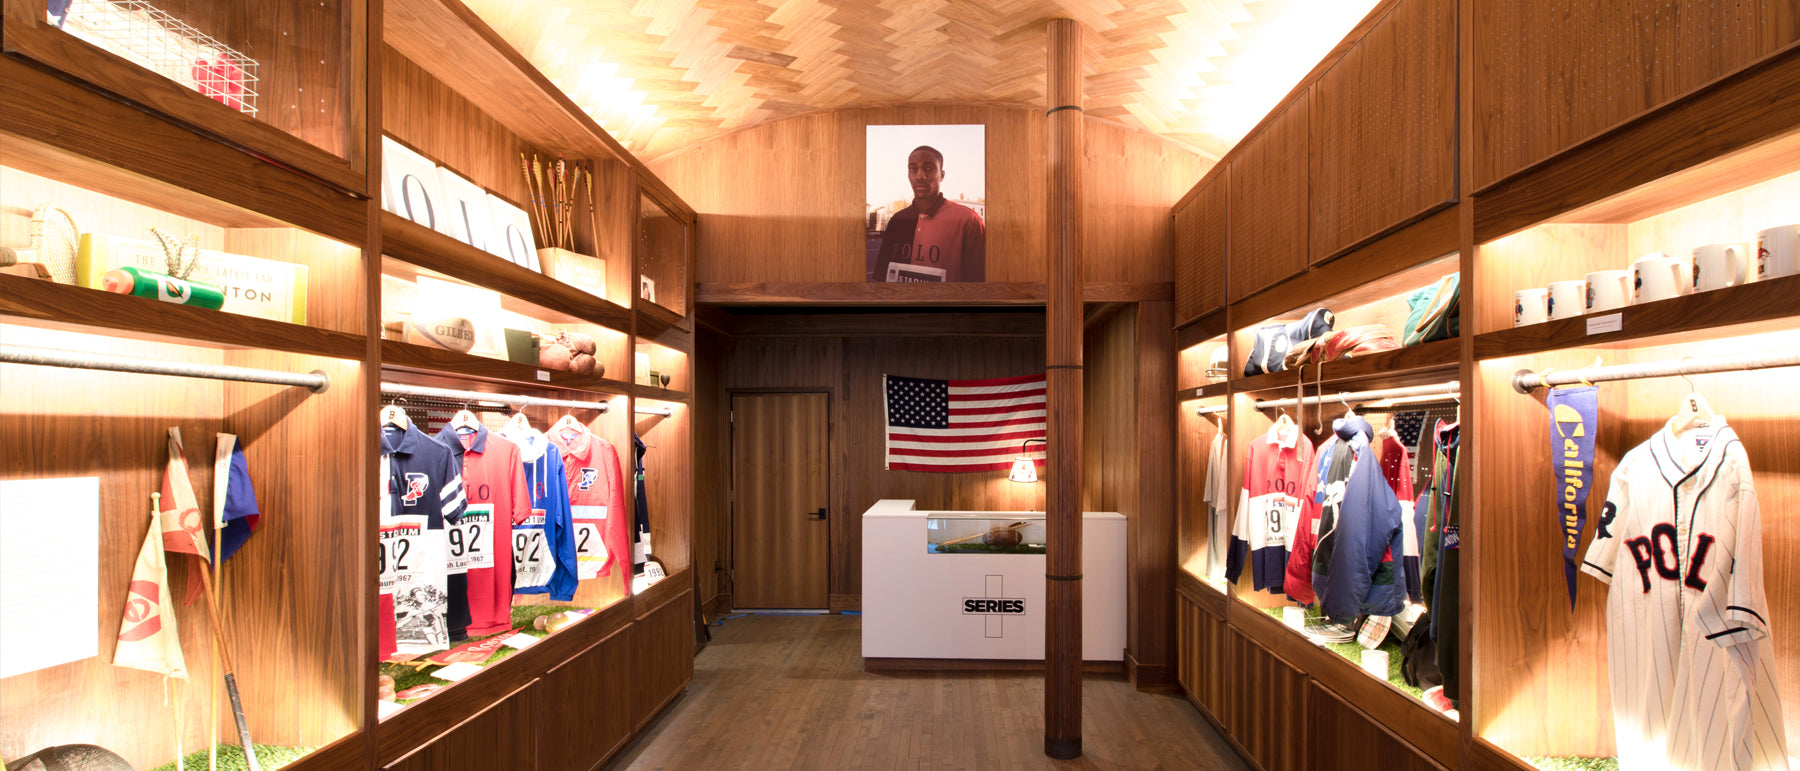 SERIES BY BODEGA: 1992 POLO STADIUM EXHIBITION RECAP